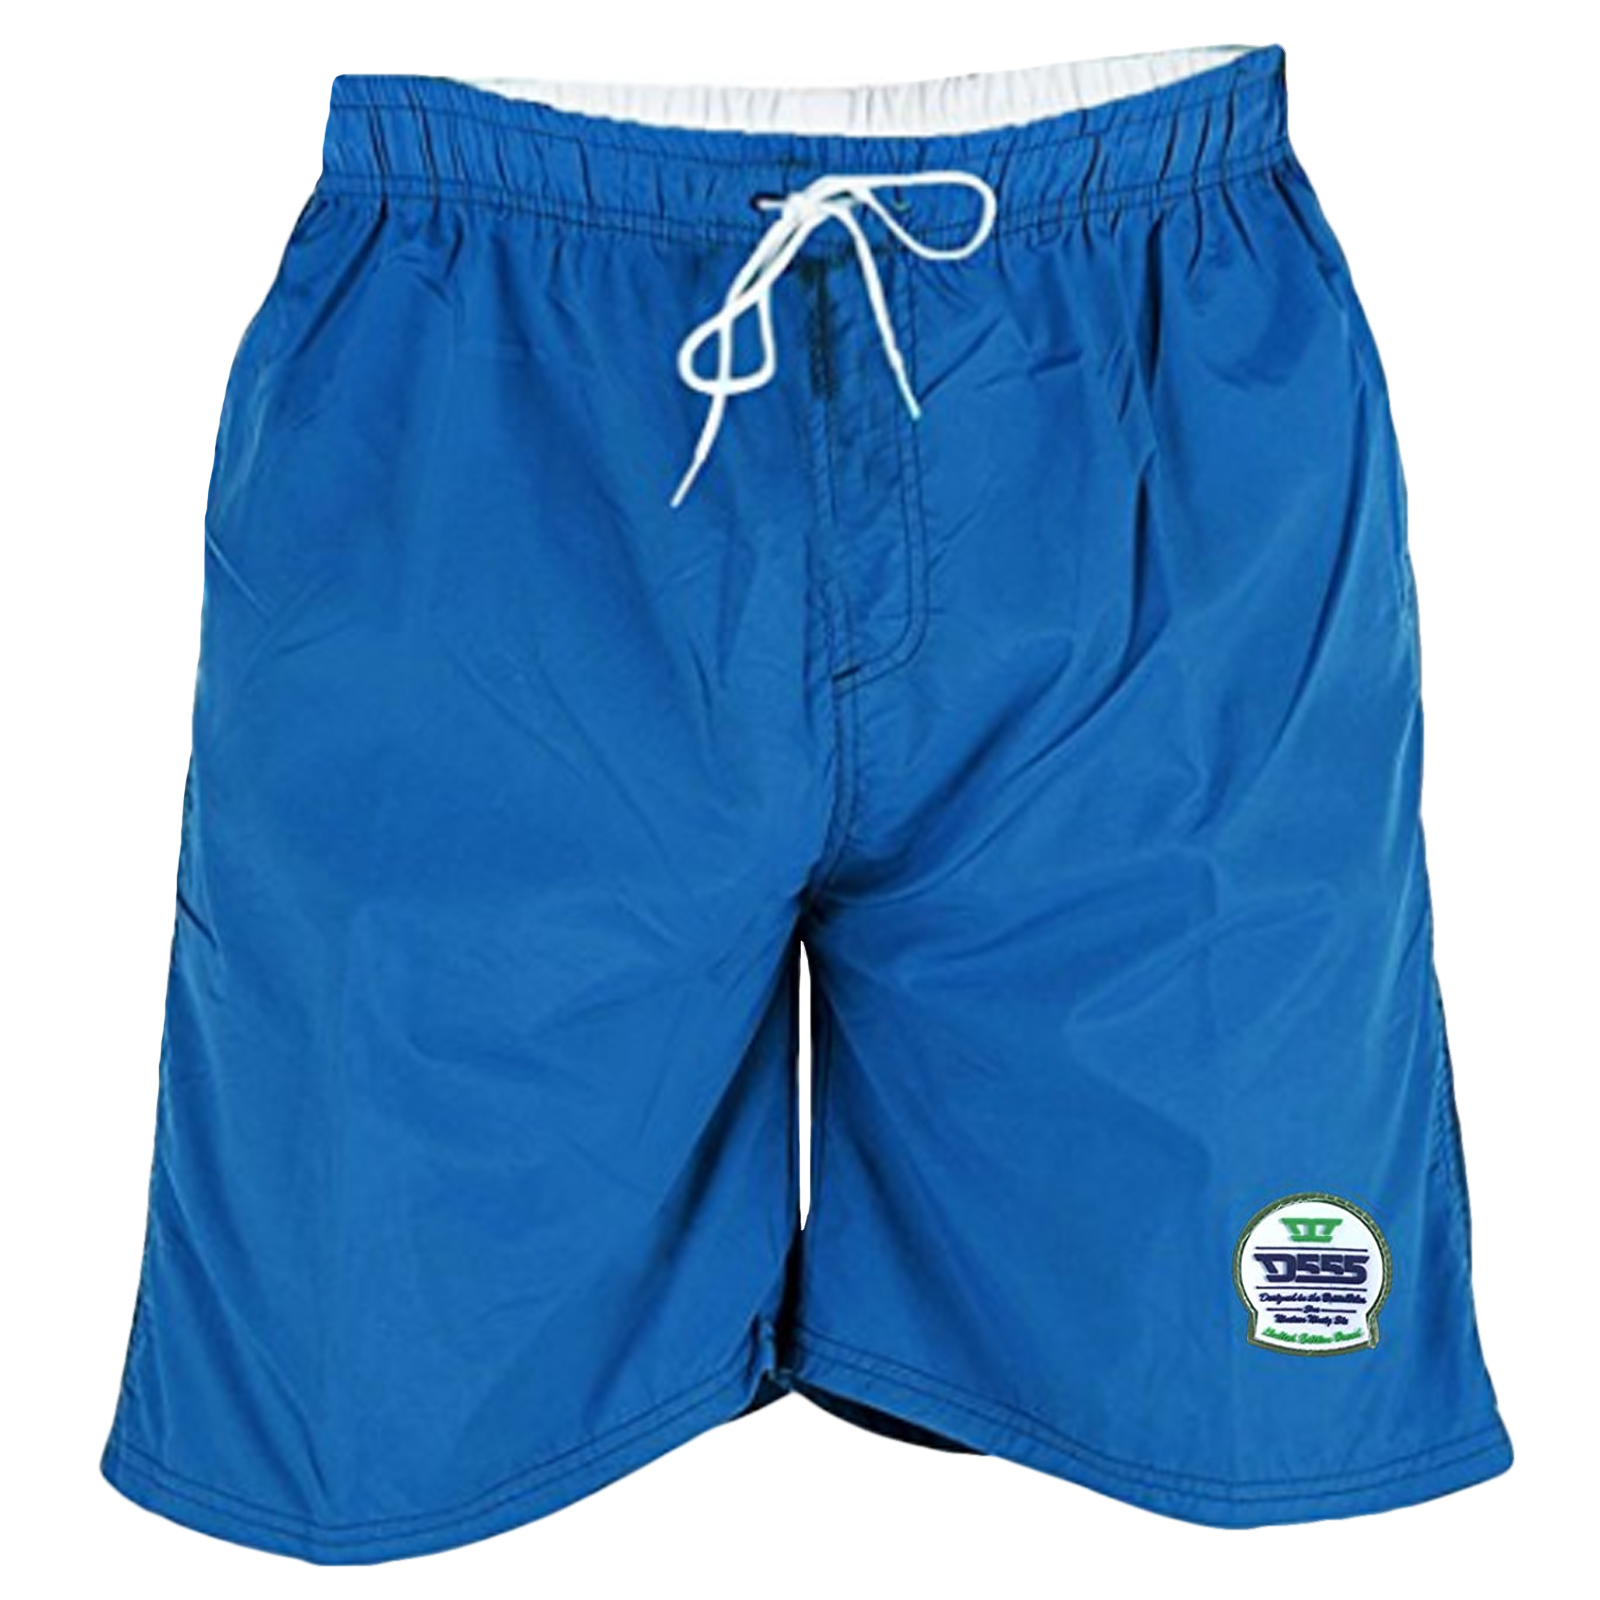 8282bc31fb ... Tall King Size Swim Shorts DESIGNER Beach Trunks Royal Blue 6xl. About  this product. Picture 1 of 3; Picture 2 of 3 ...